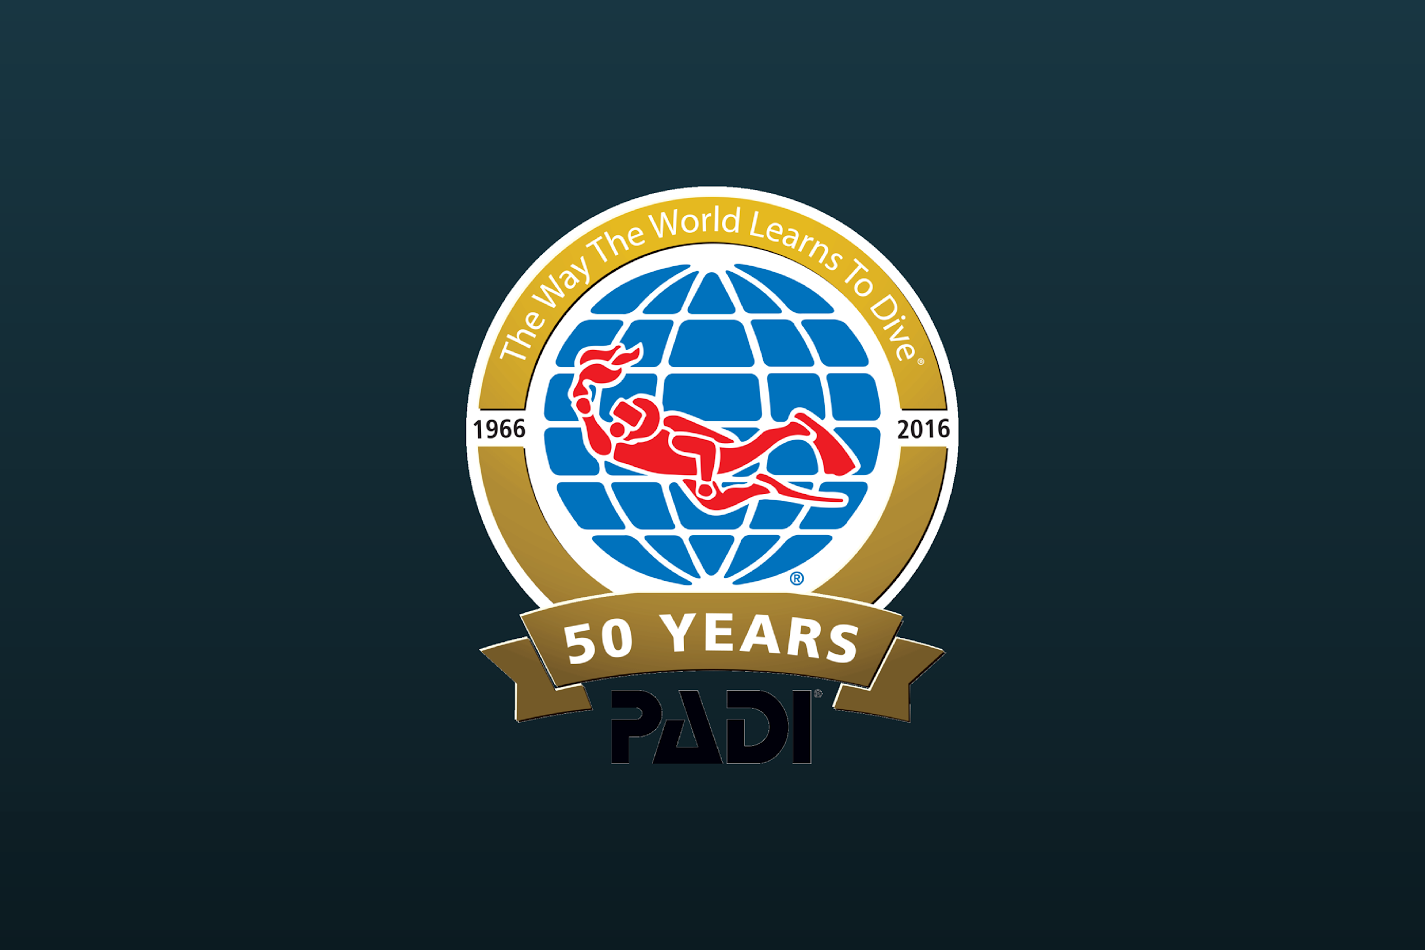 PADI Issues 25 Millionth Certification